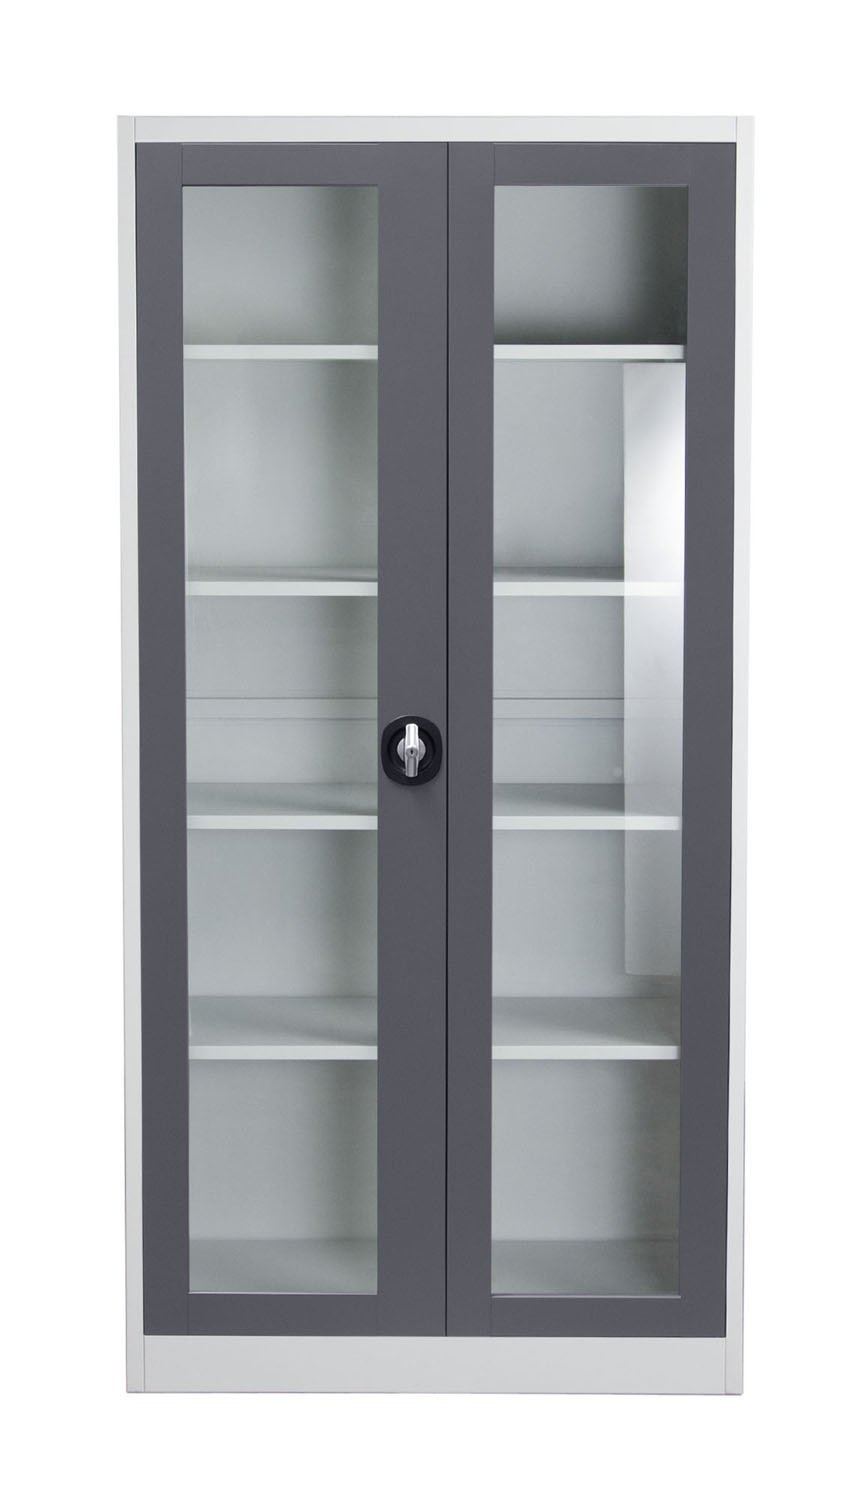 Lockable Bookcases Within Recent Amazon: 2 Door Bookcase: Home Improvement (View 12 of 15)